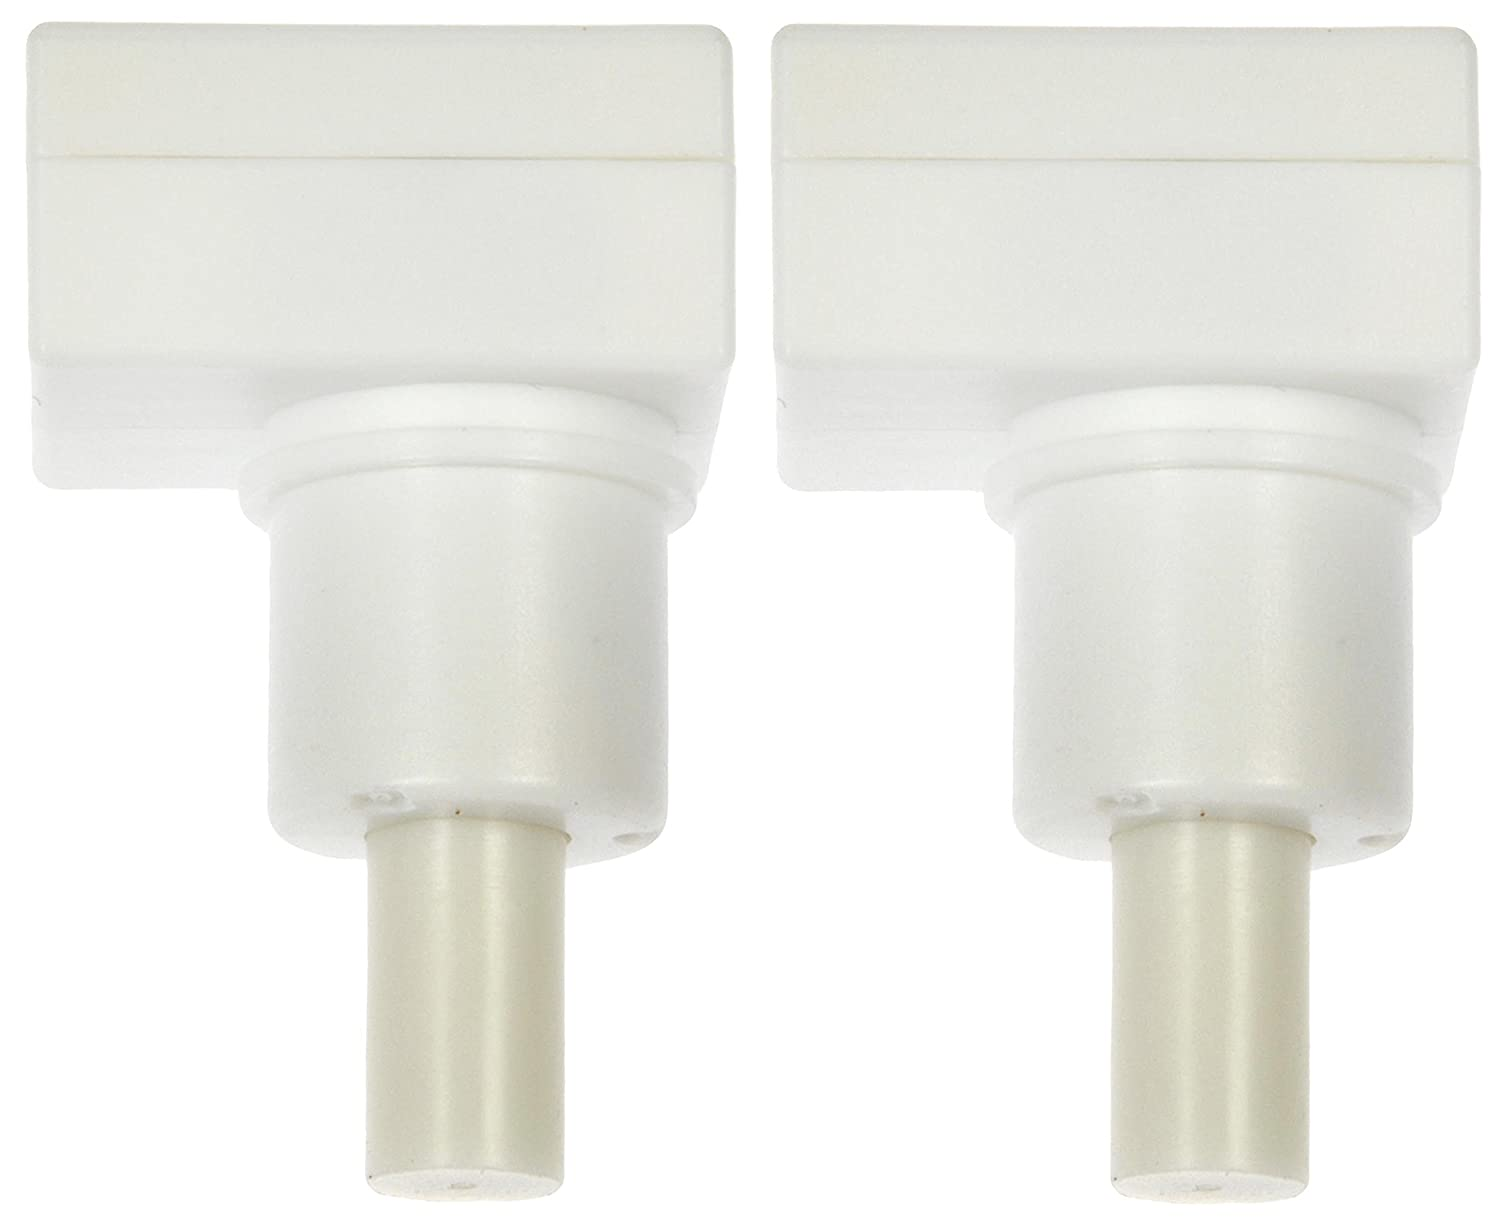 97 Saturn Sl2 Fuse Box Dorman 924 798 Dome Lamp Switch Pack Of 2 Automotive